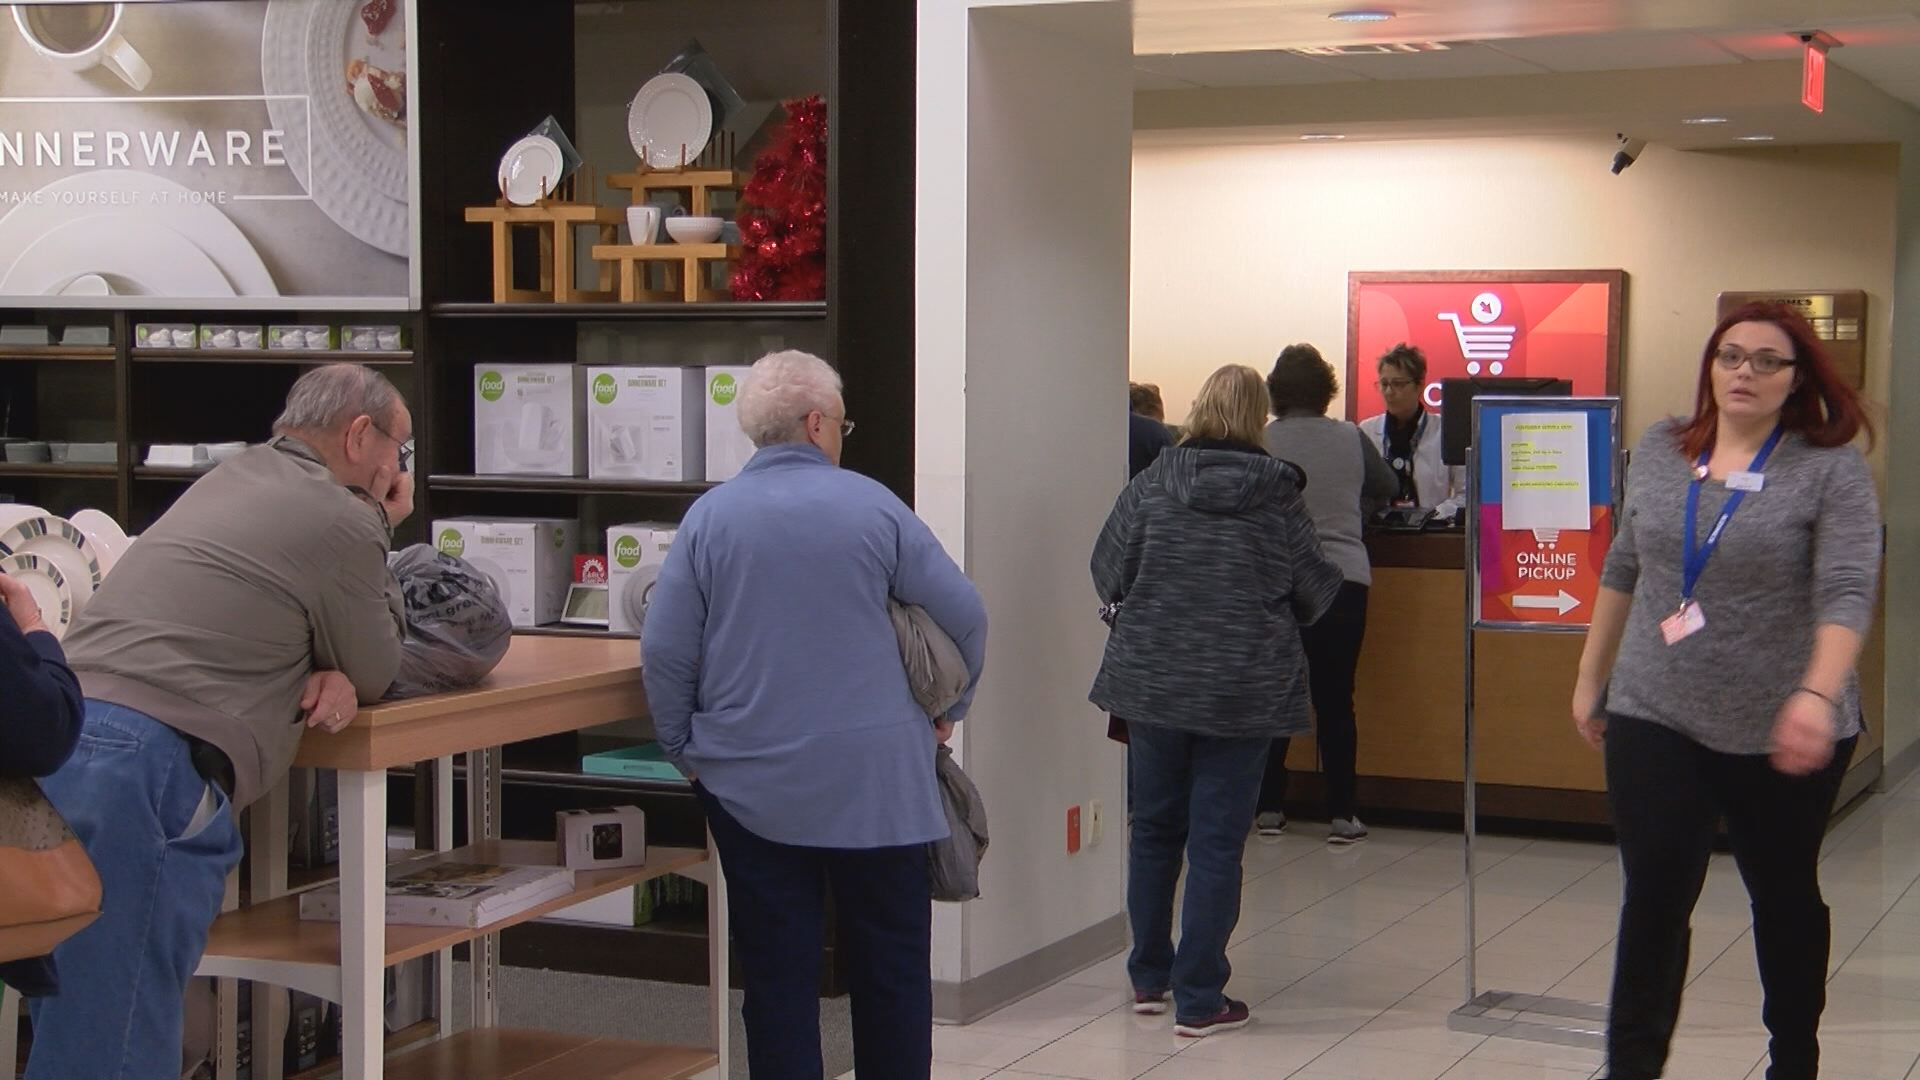 After Christmas, shoppers head back to malls for returns